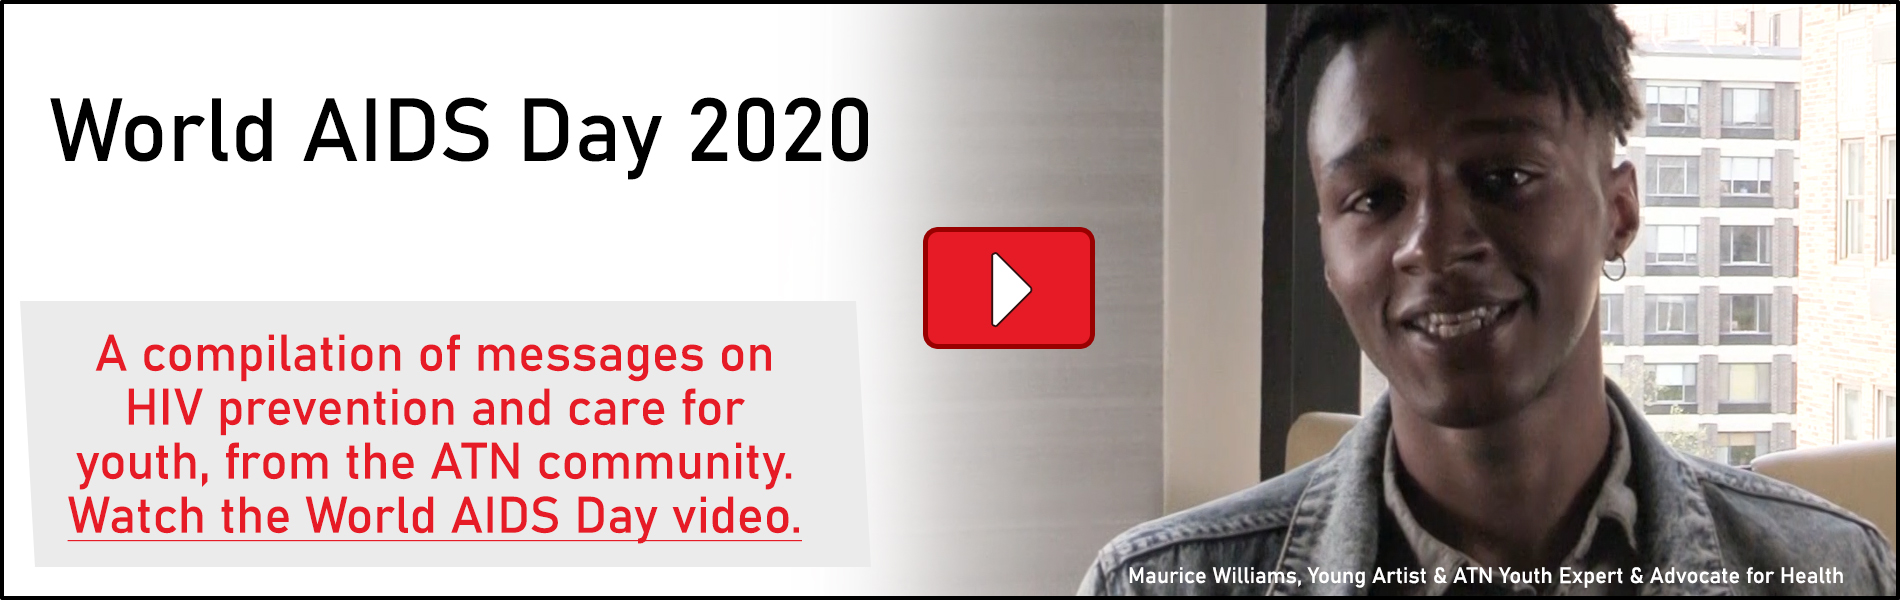 World AIDS Day 2020 - A compilation of messages on HIV prevention and care for youth, from the ATN community. Watch the World AIDS Day video.